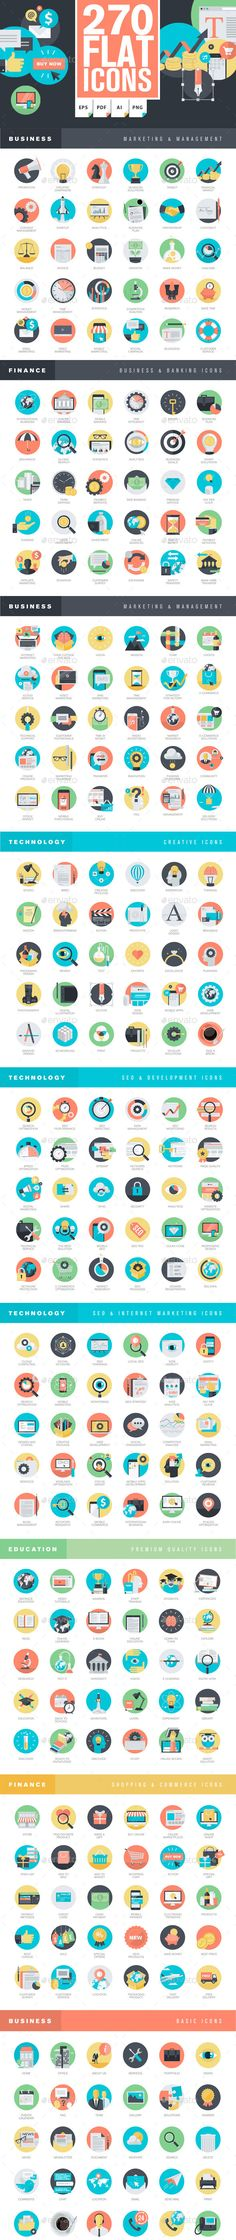 Set of 270 flat design icons for marketing, business, finance, e-commerce, web design & development, app development, SEO, online shopping, digital marketing, management, education. Download: http://graphicriver.net/item/set-of-flat-design-icons/11203539?ref=ksioks